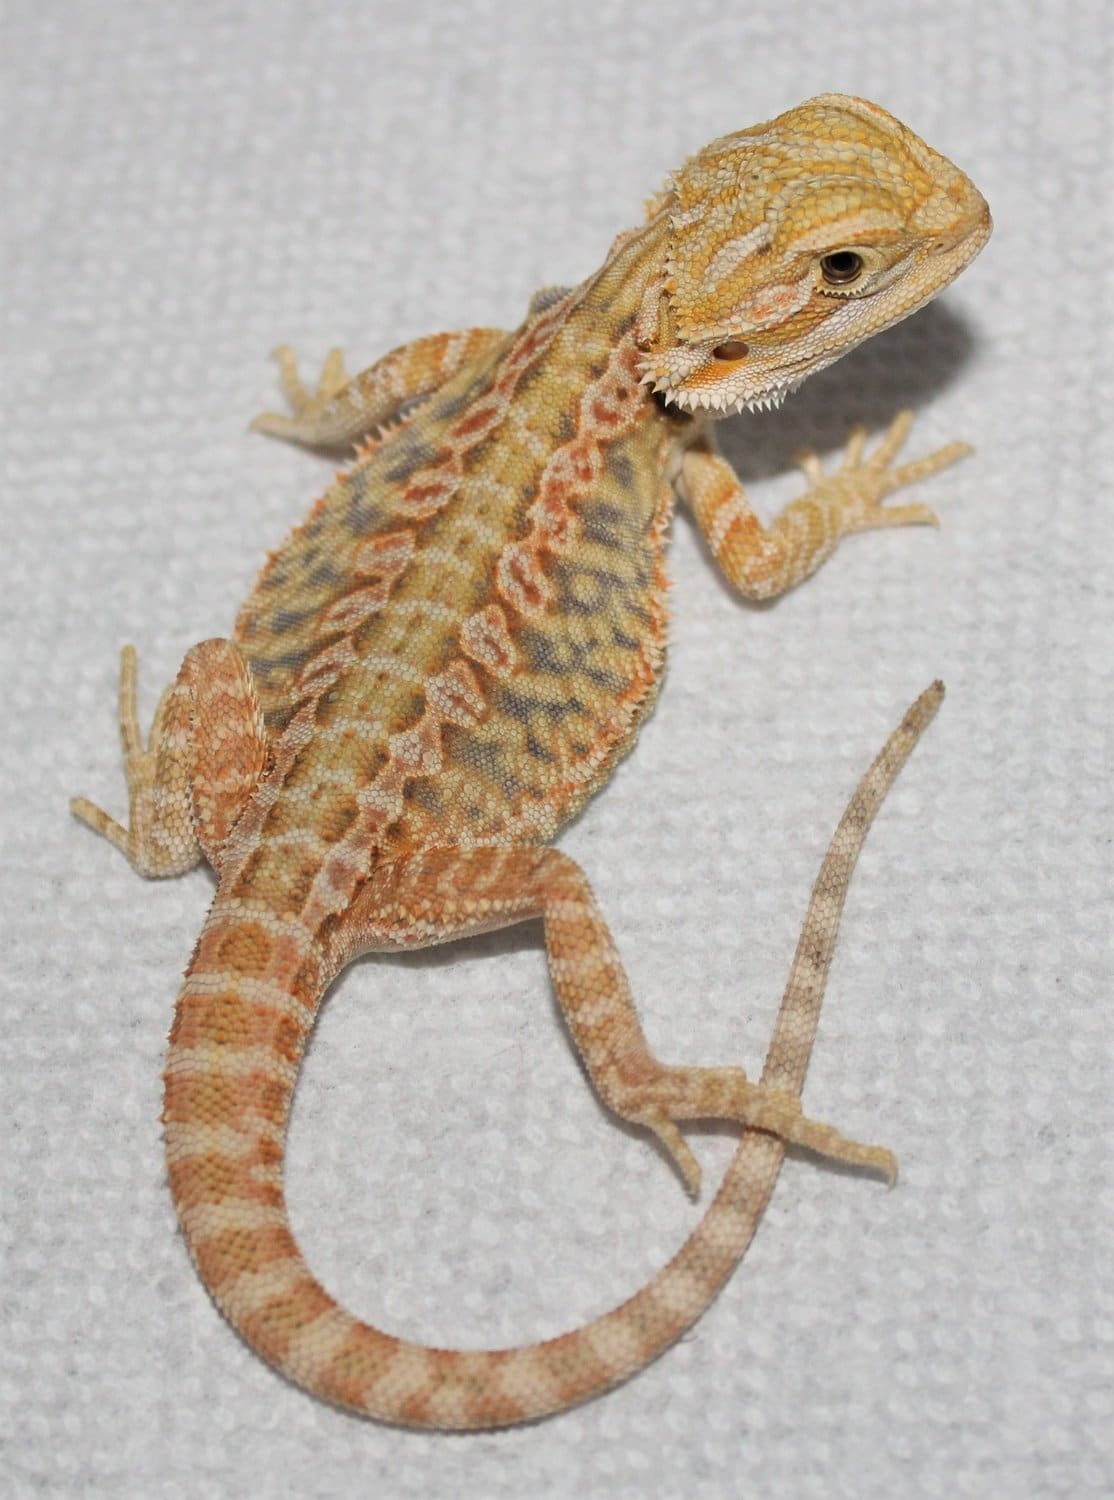 Hypo bearded dragon